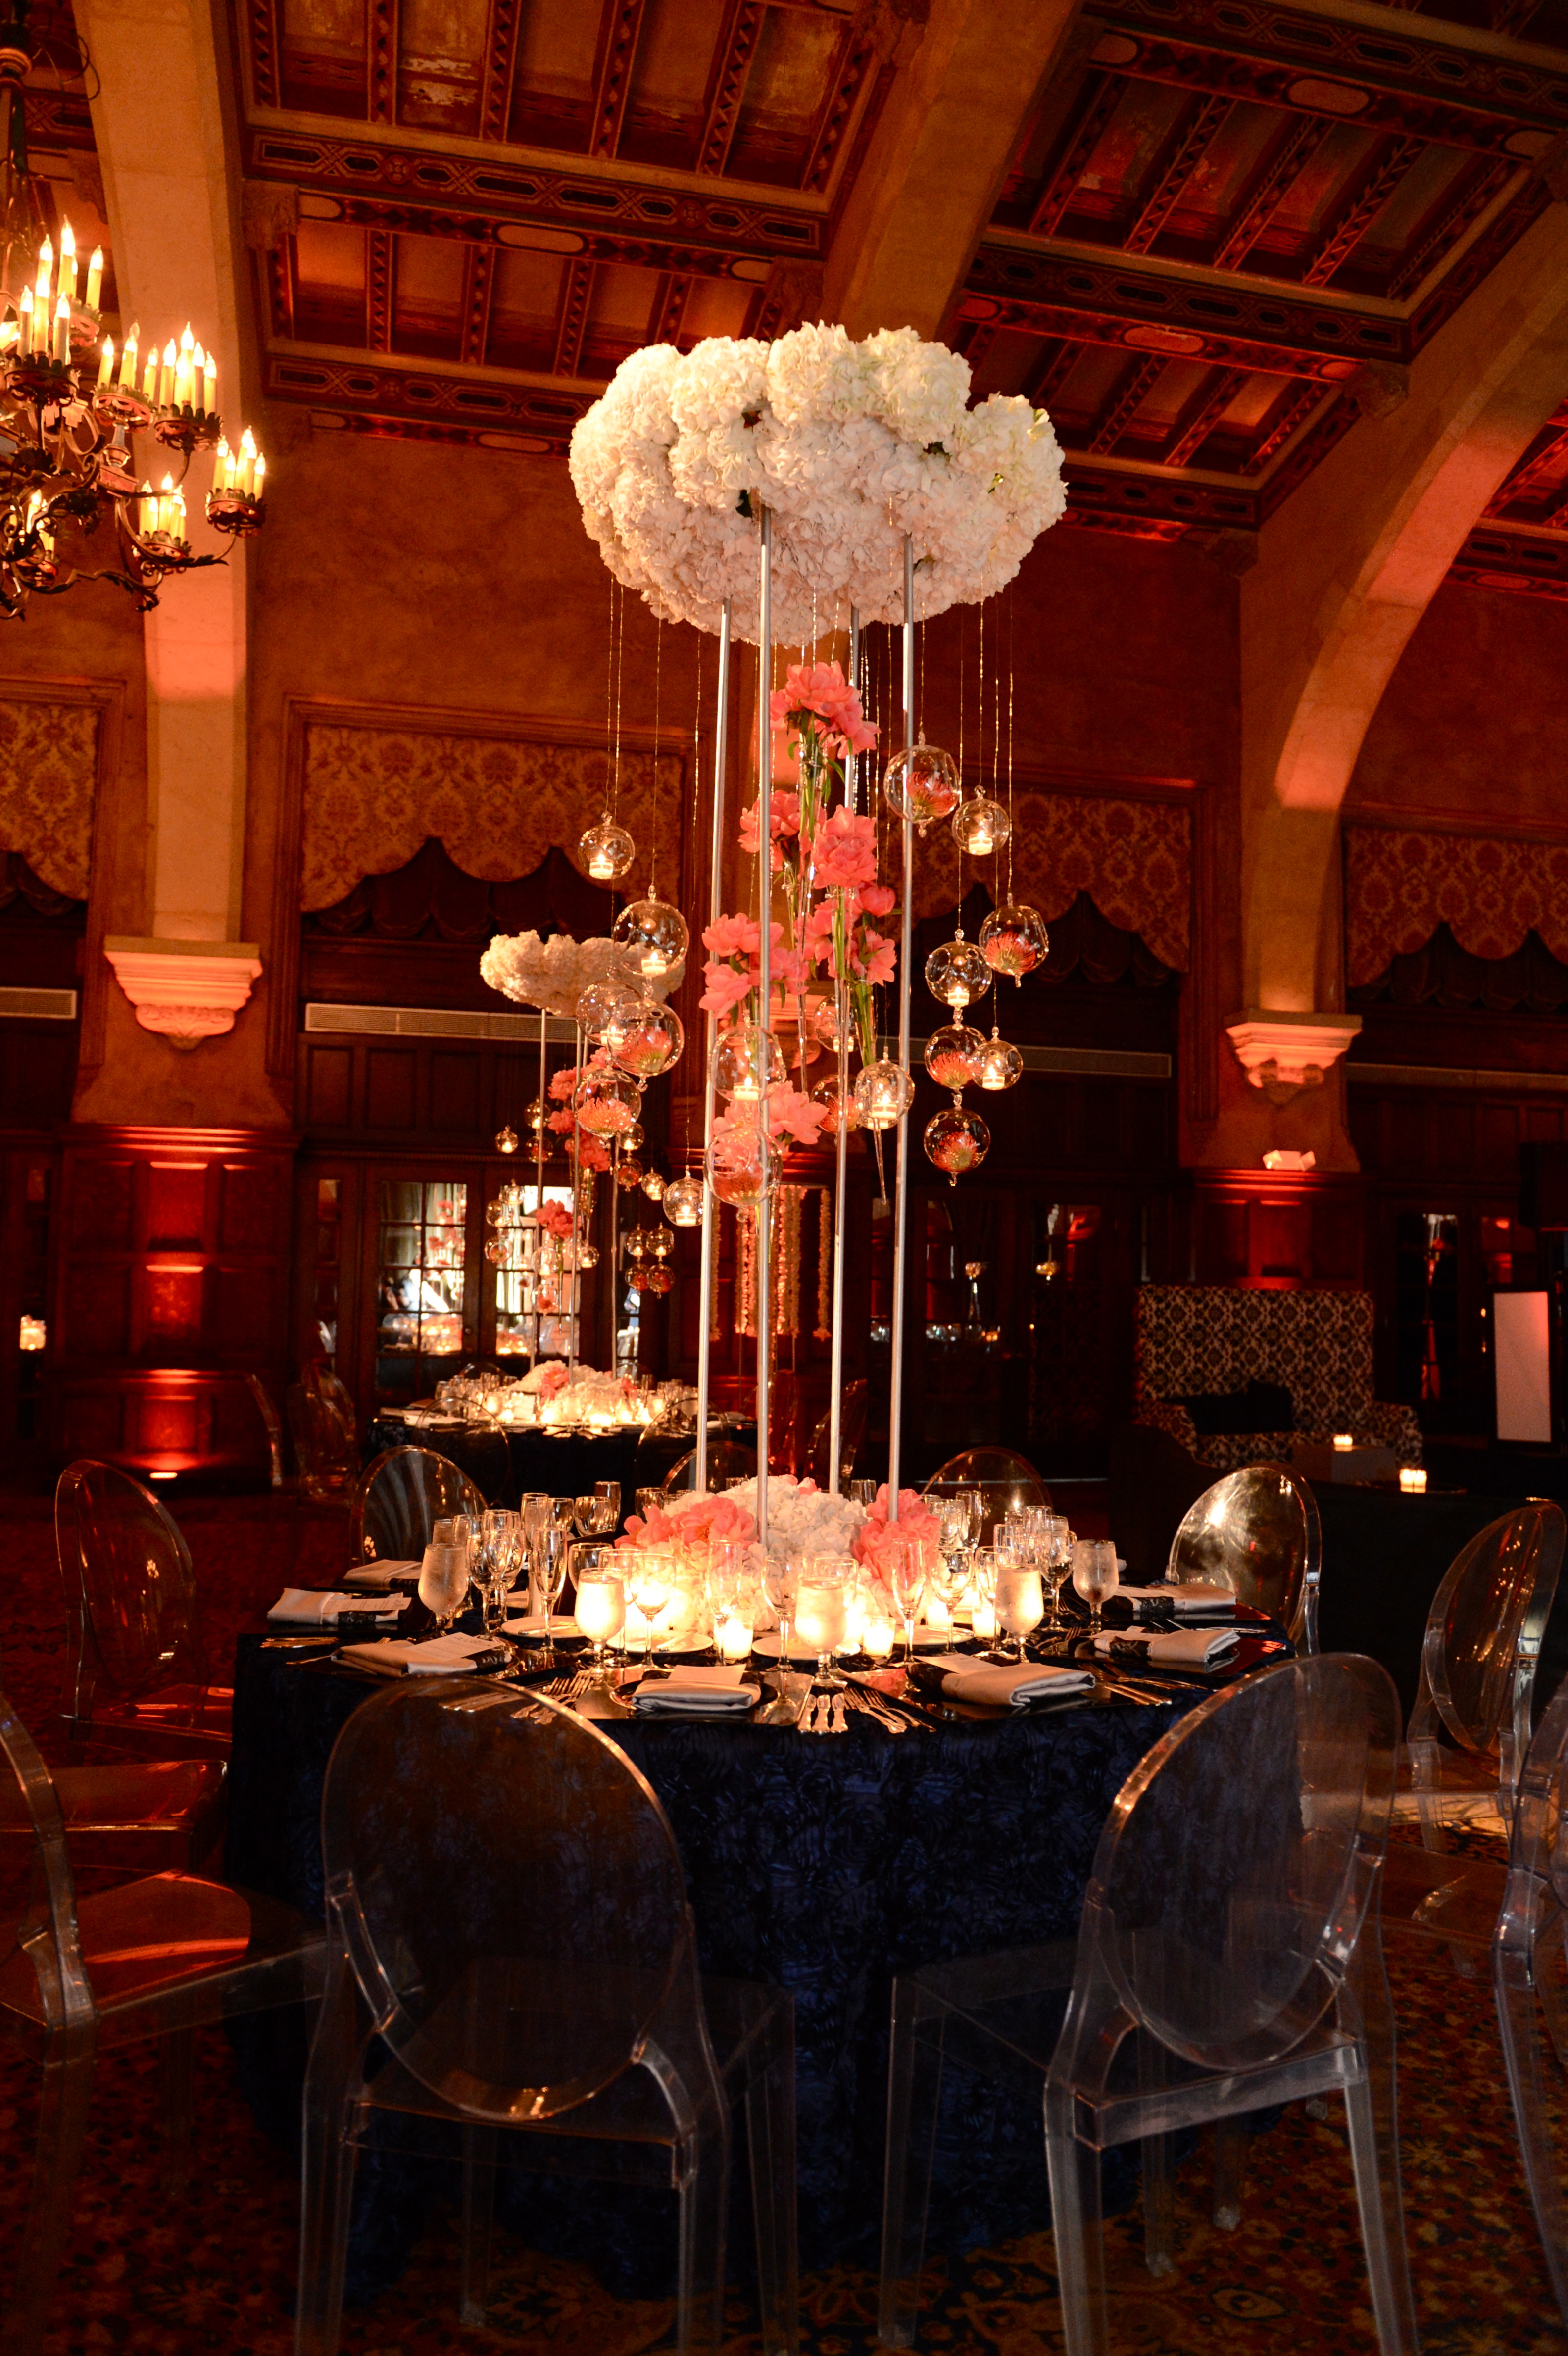 Reception, Flowers & Decor, Real Weddings, Centerpiece, Destination, Glamorous, Formal, Ballroom, Dramatic